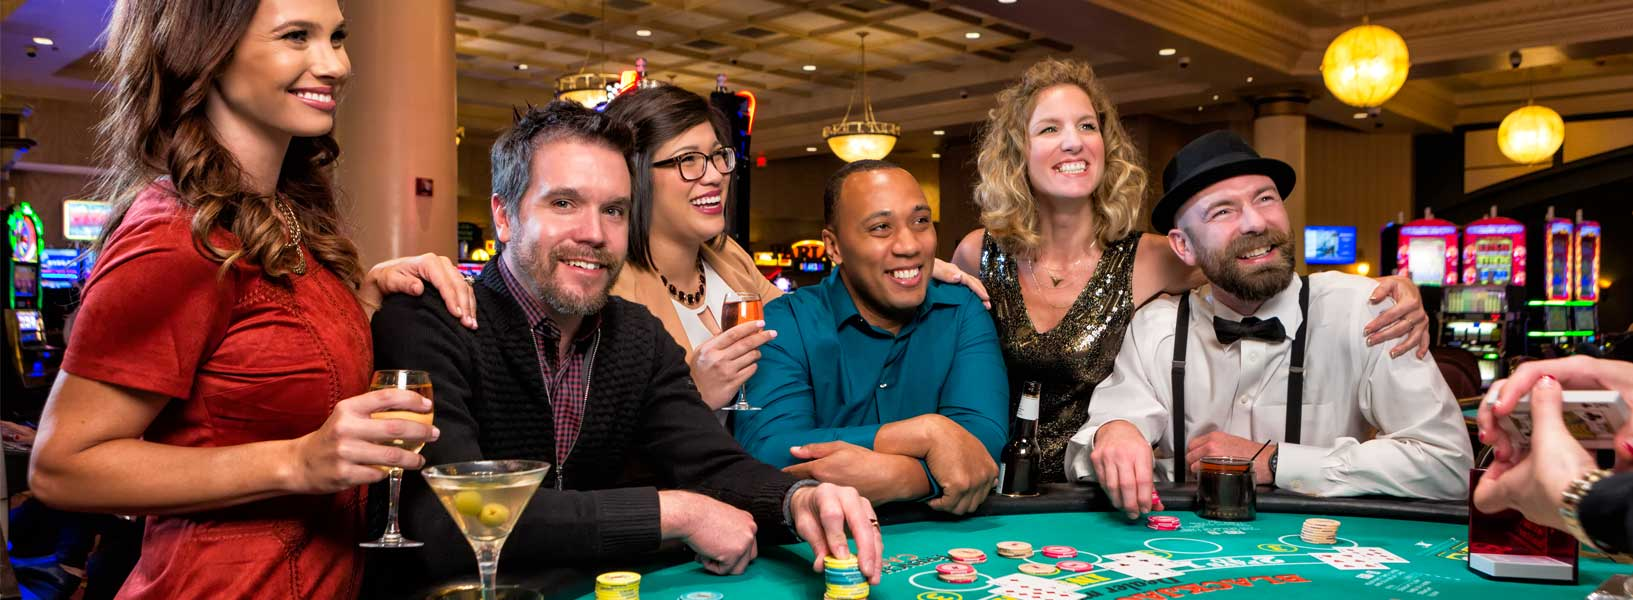 Four simple ways to win big in online poker tournaments in a small stakes game